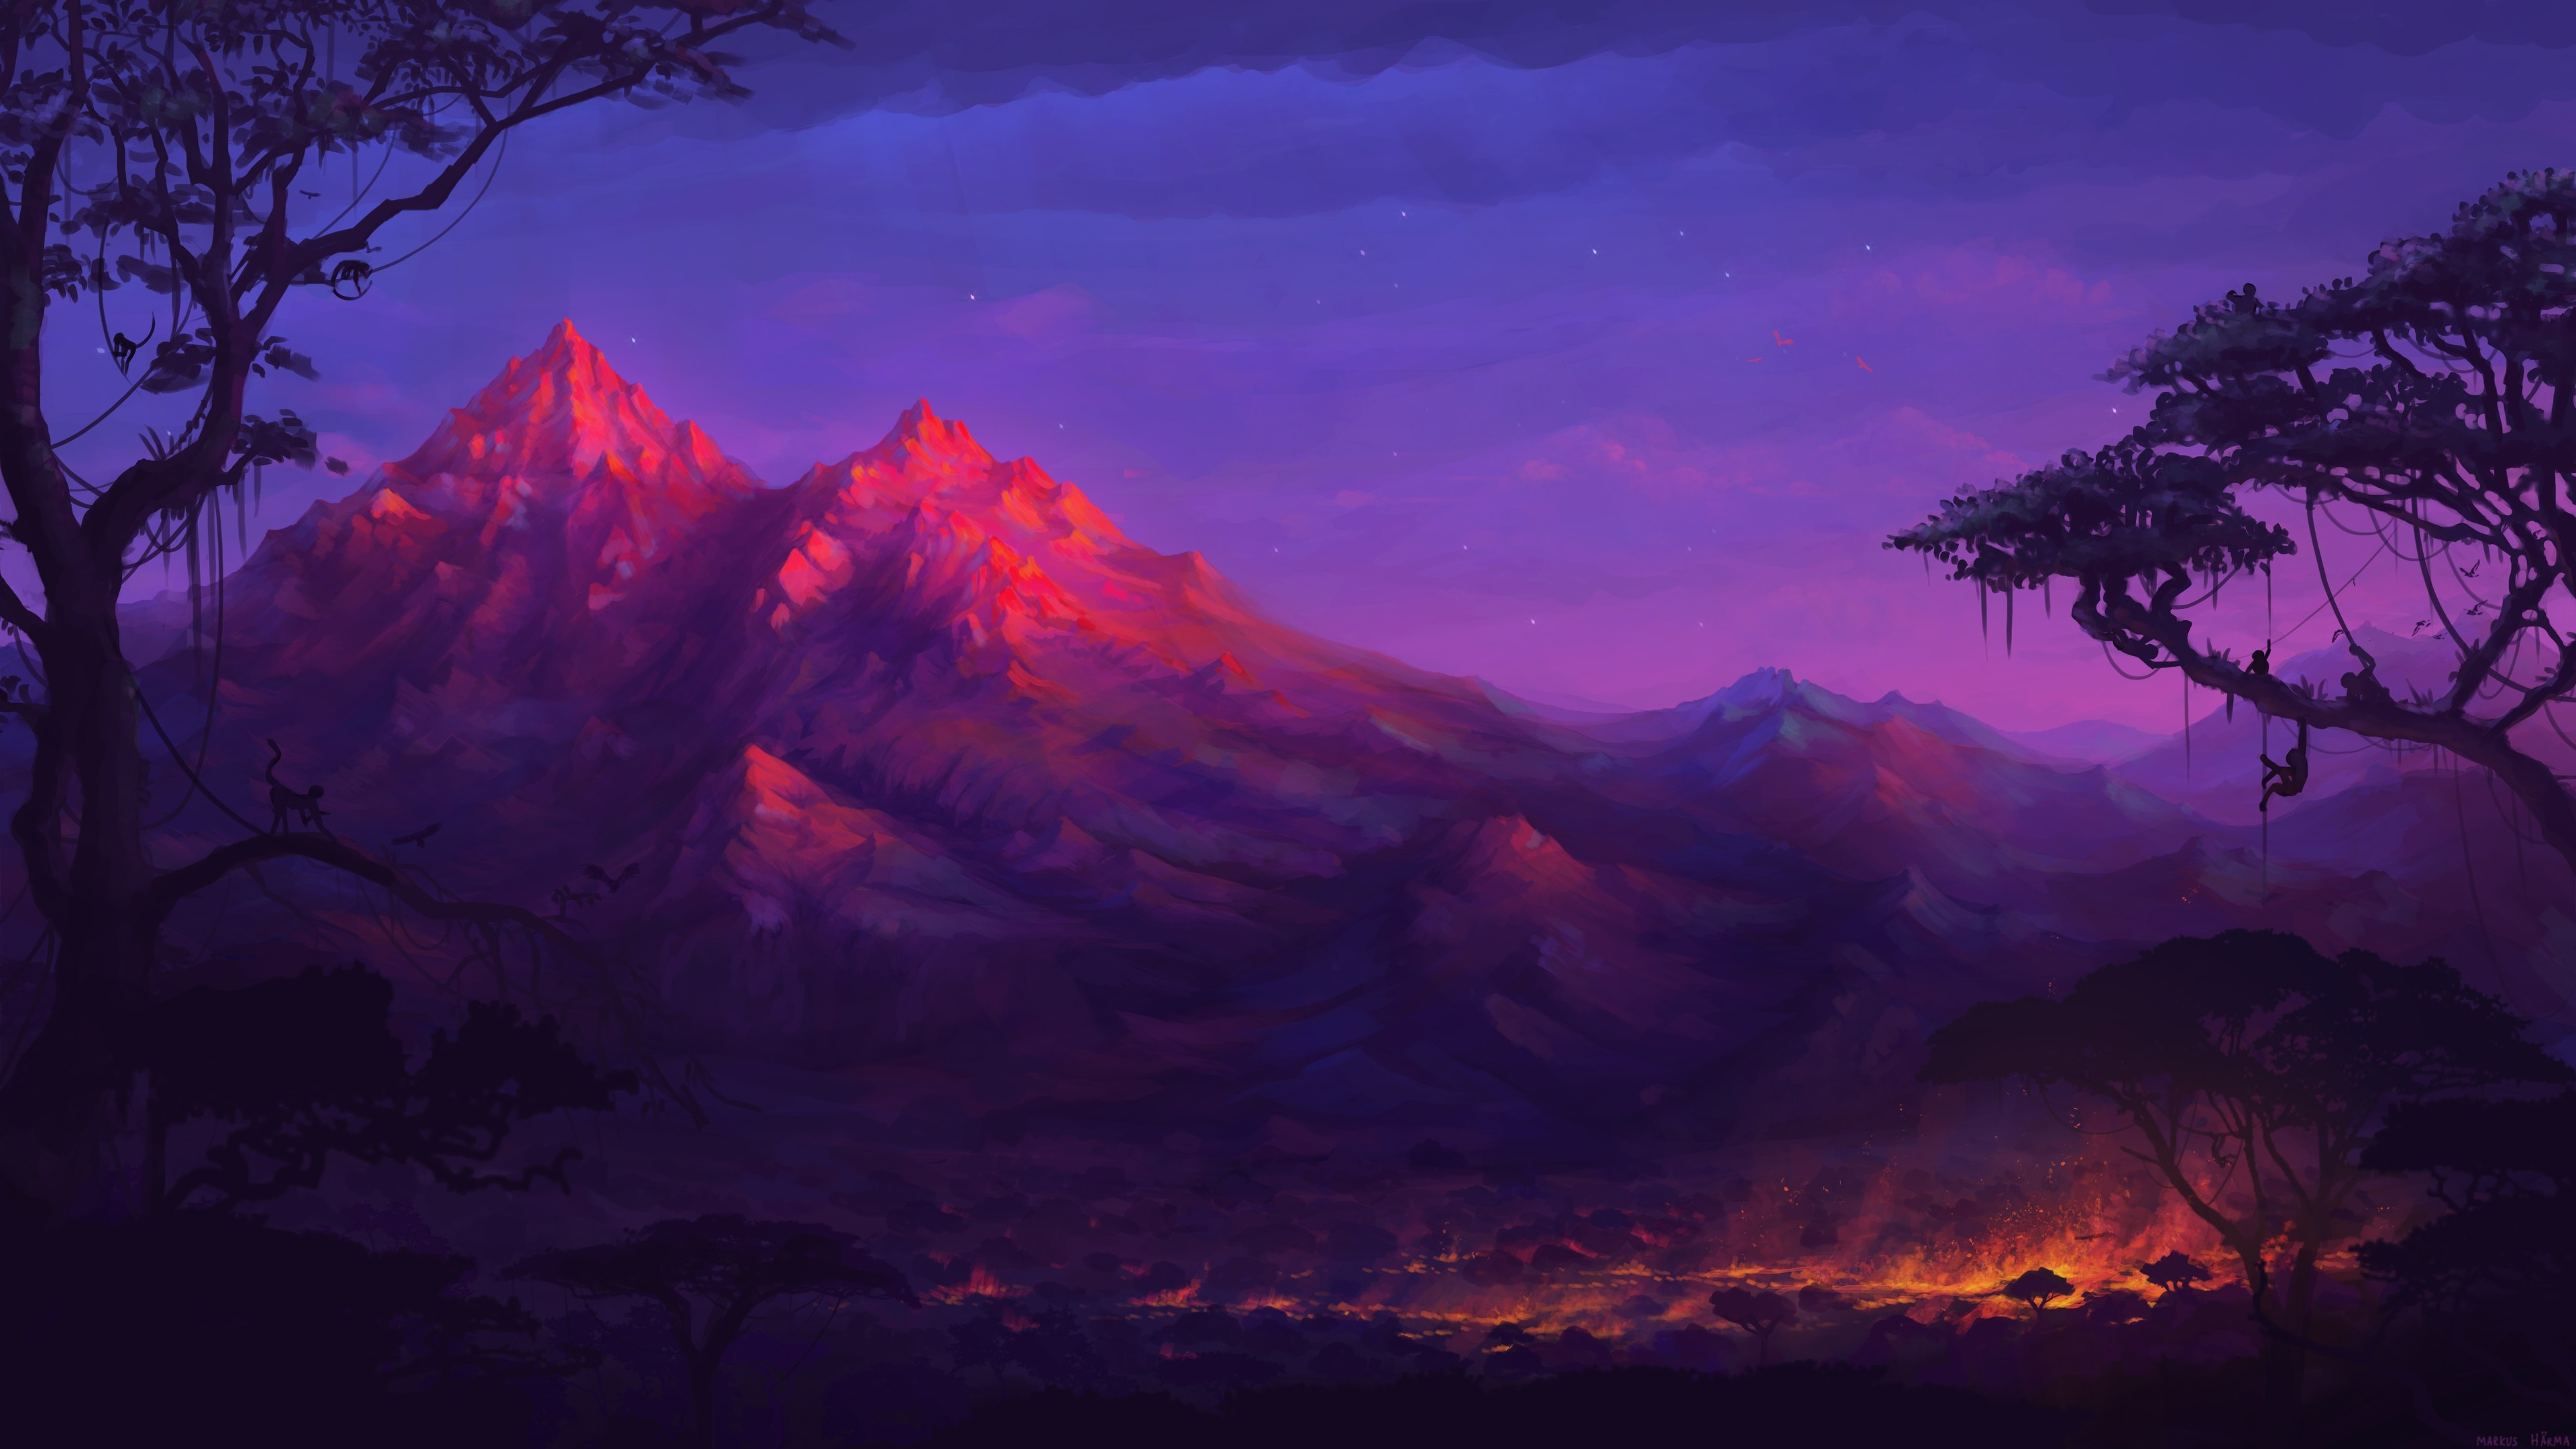 forest mountains colorful night trees fantasy artwork 4k 1540754661 - Forest Mountains Colorful Night Trees Fantasy Artwork 4k - hd-wallpapers, forest wallpapers, fantasy wallpapers, digital art wallpapers, deviantart wallpapers, colorful wallpapers, artwork wallpapers, artist wallpapers, 5k wallpapers, 4k-wallpapers